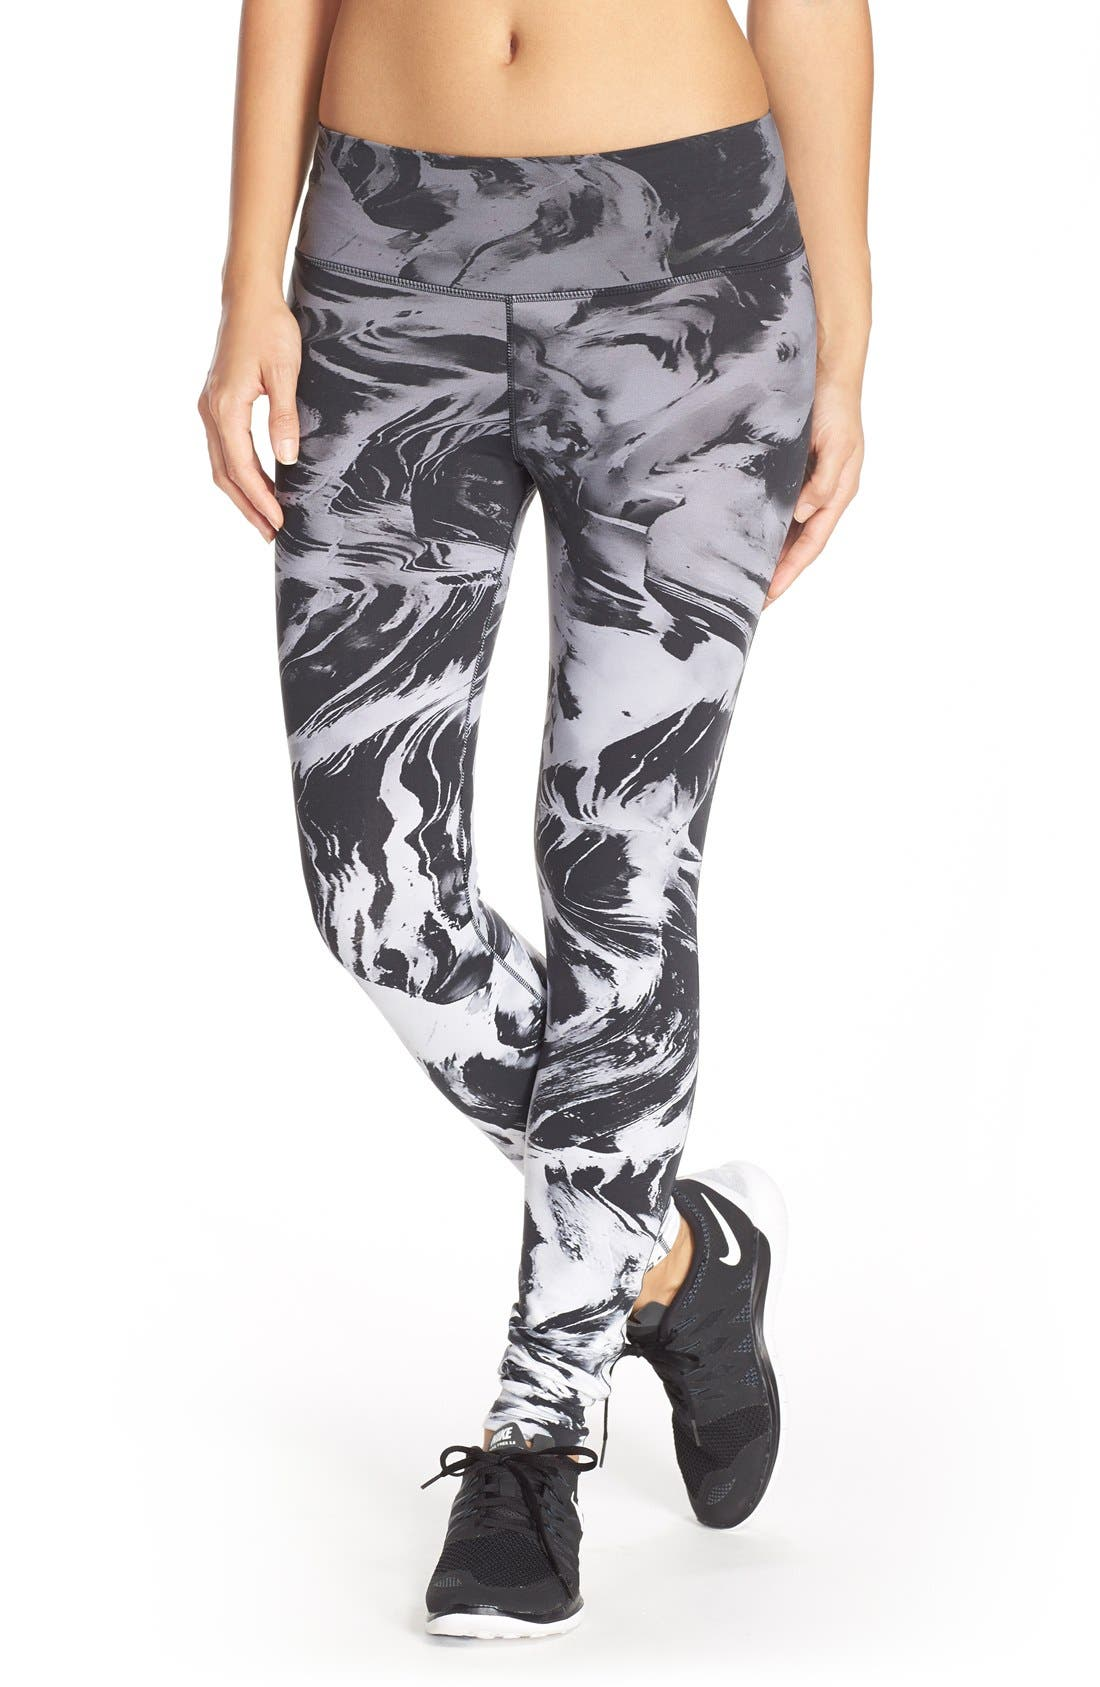 Alternate Image 1 Selected - Nike 'Legendary' Print Dri-FIT Tights